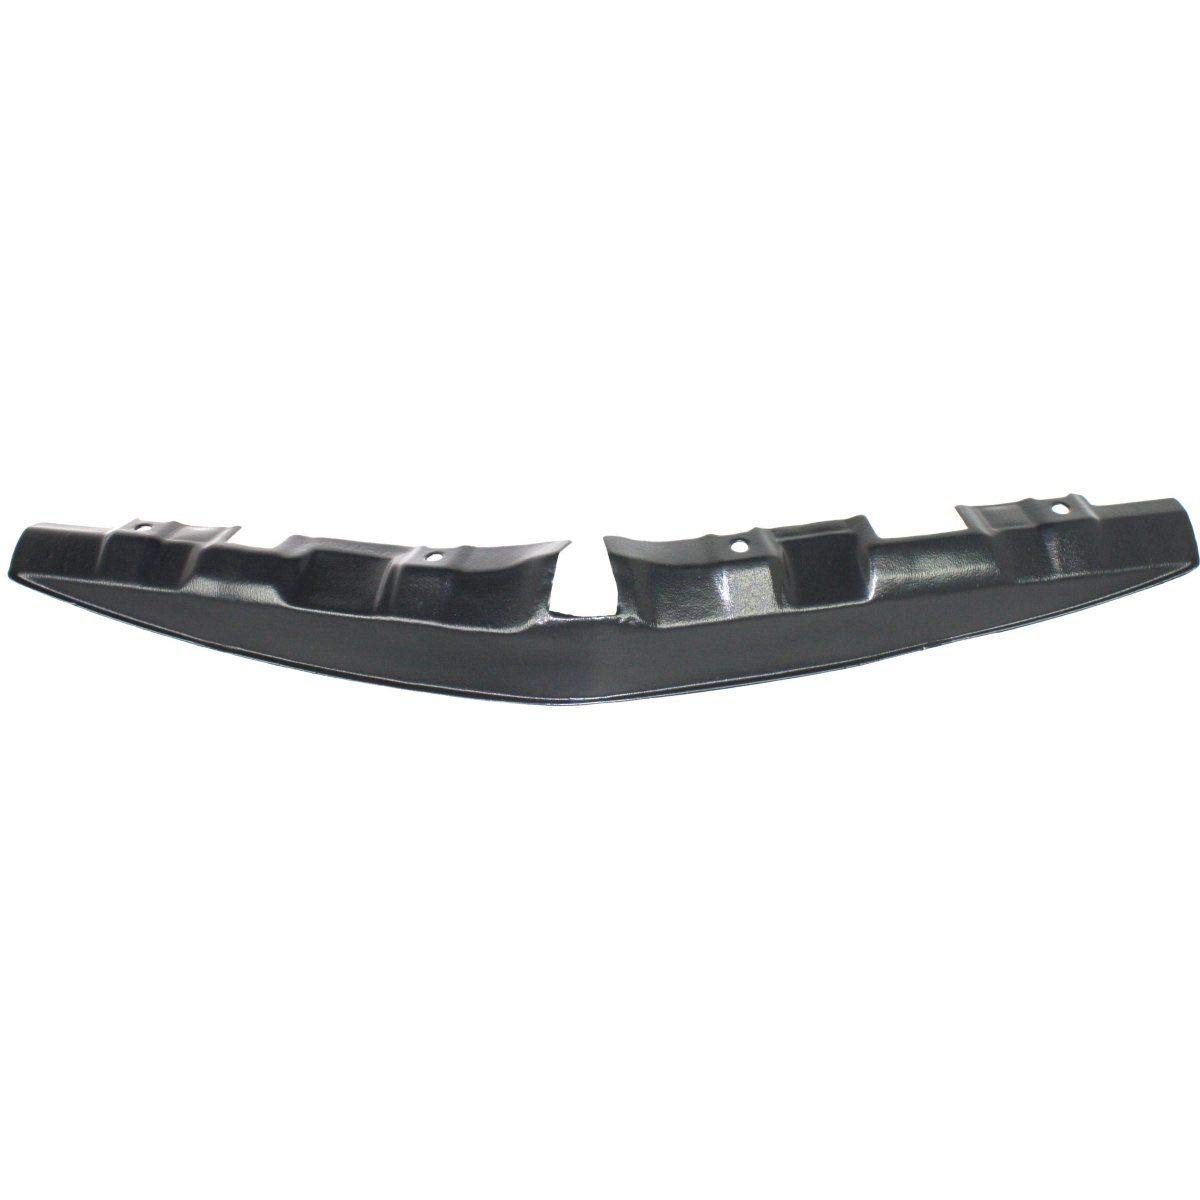 Front Engine Splash Shield For 97-2001 Toyota Camry